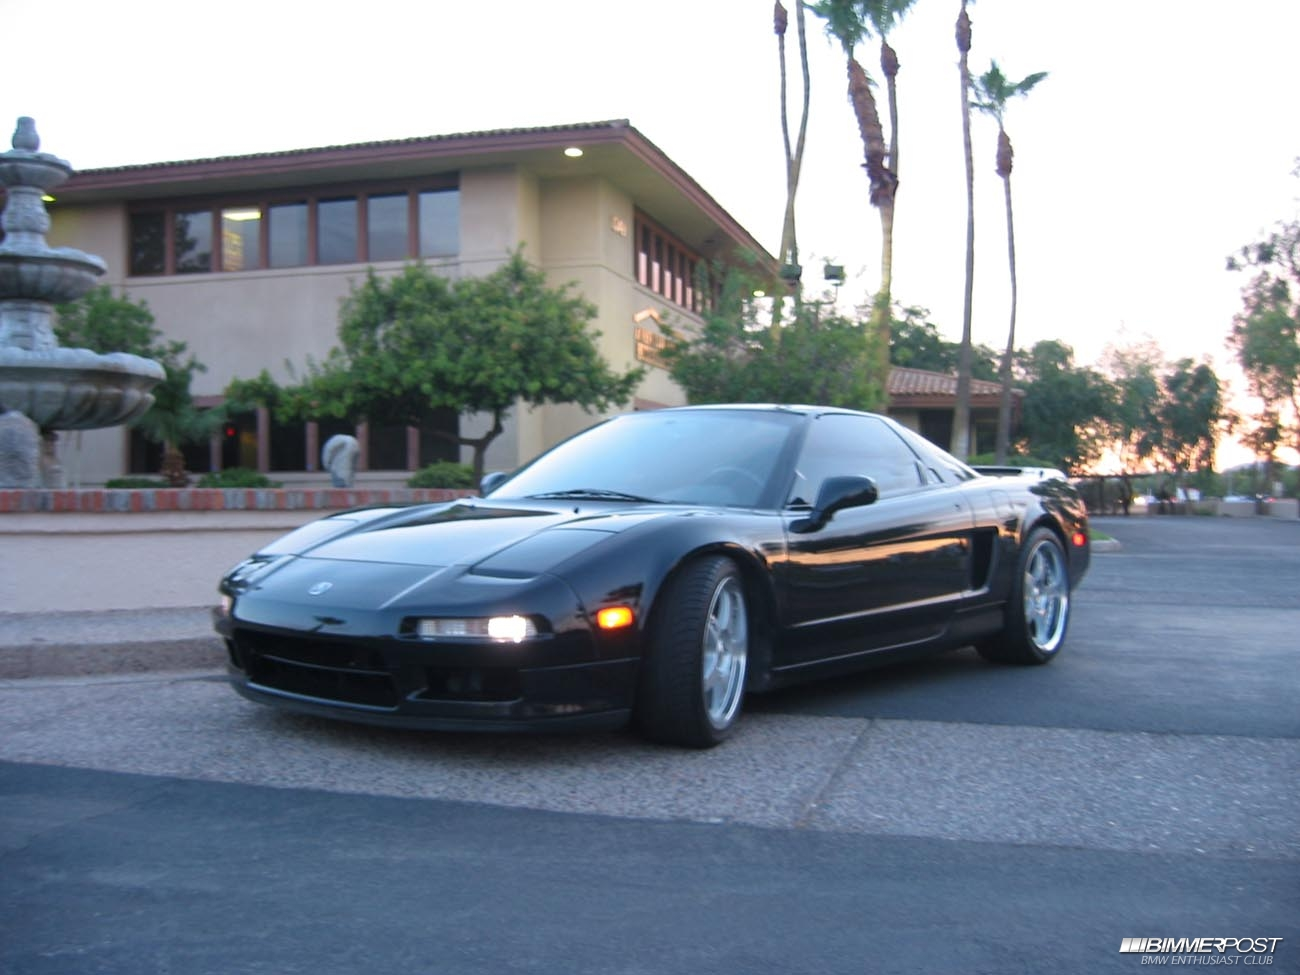 Three3oh S 2003 Acura Nsx Bimmerpost Garage